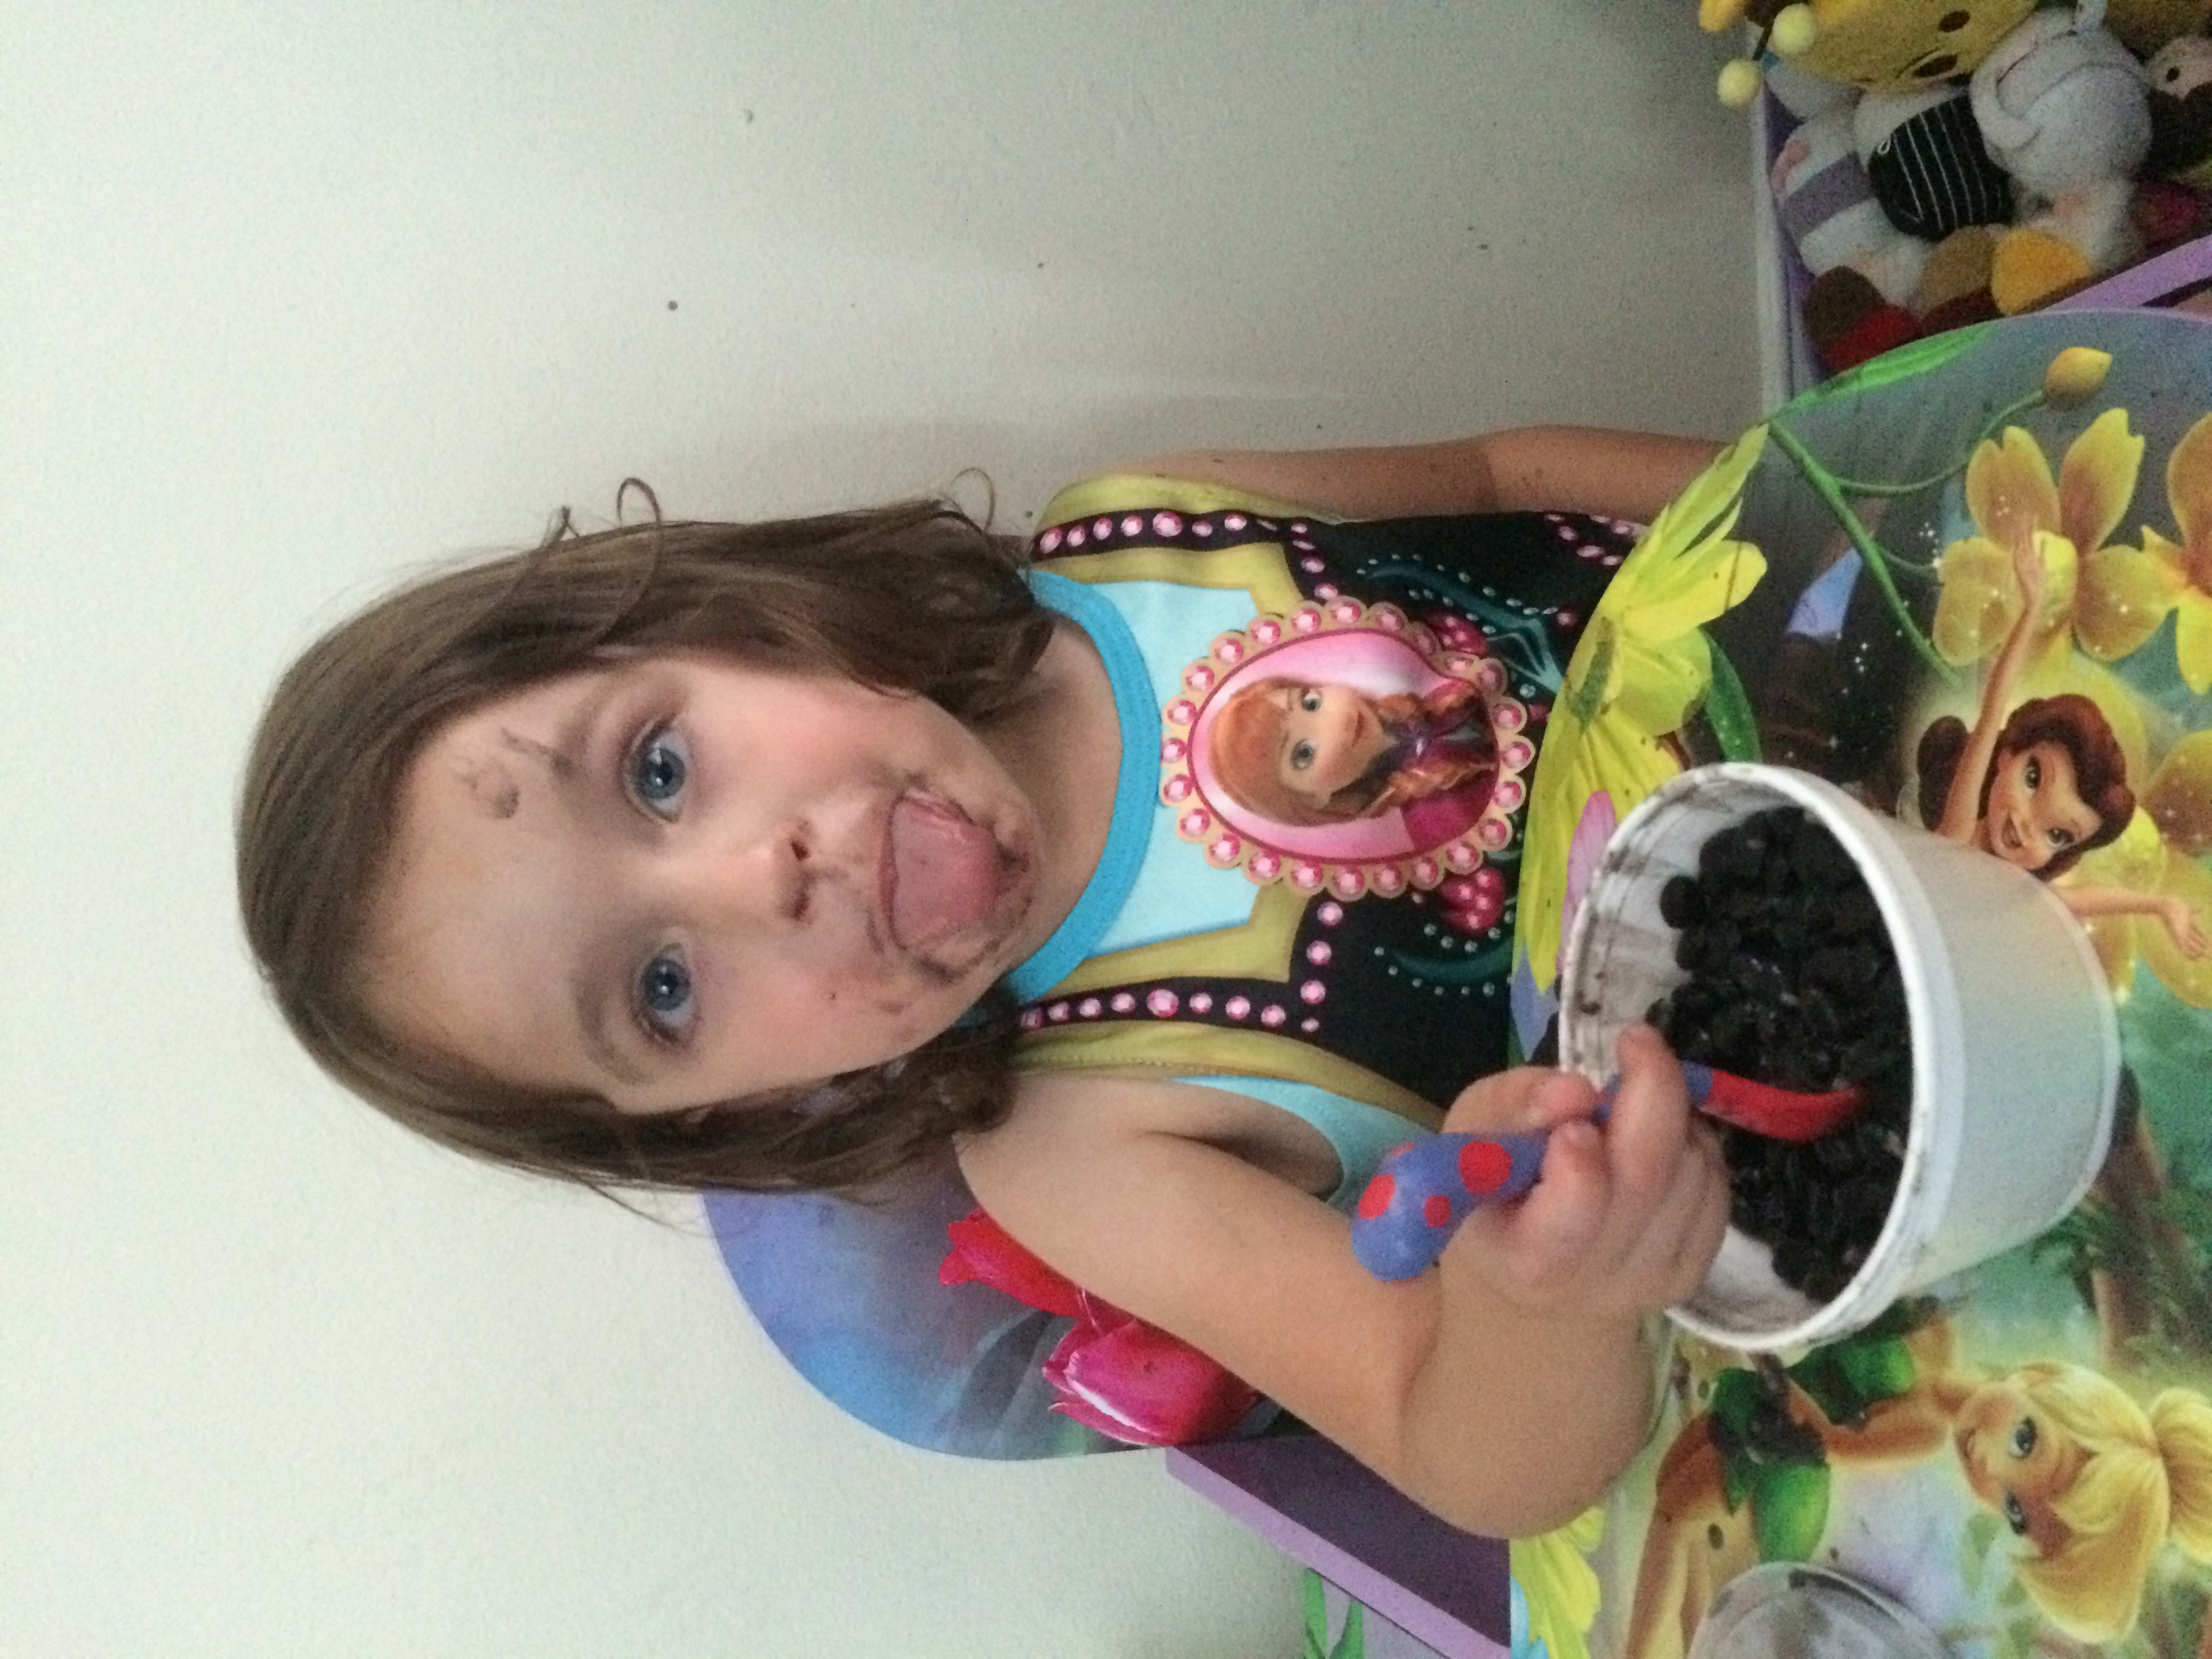 This picture doesn't allow you to appreciate the splattered black beans all over the wall behind her